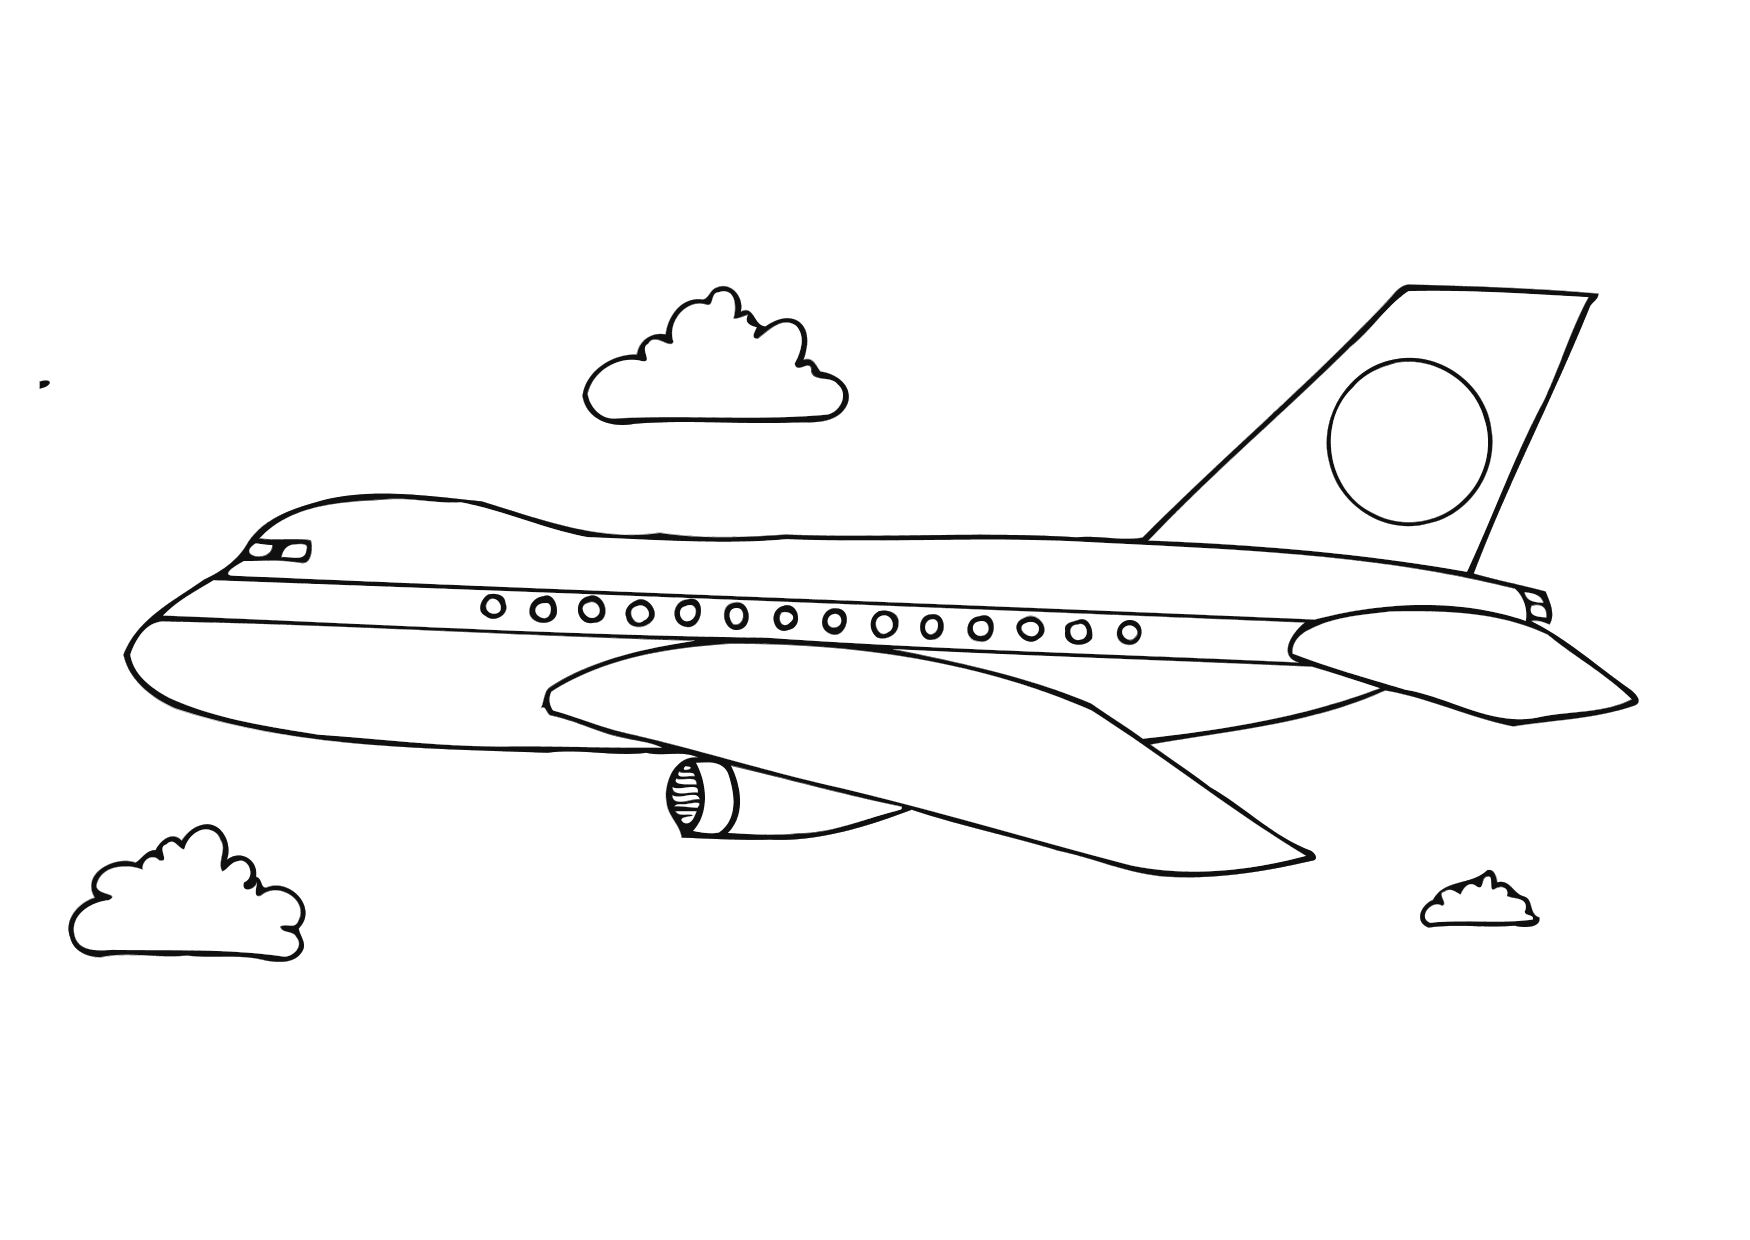 plane coloring pages - airplane coloring pages